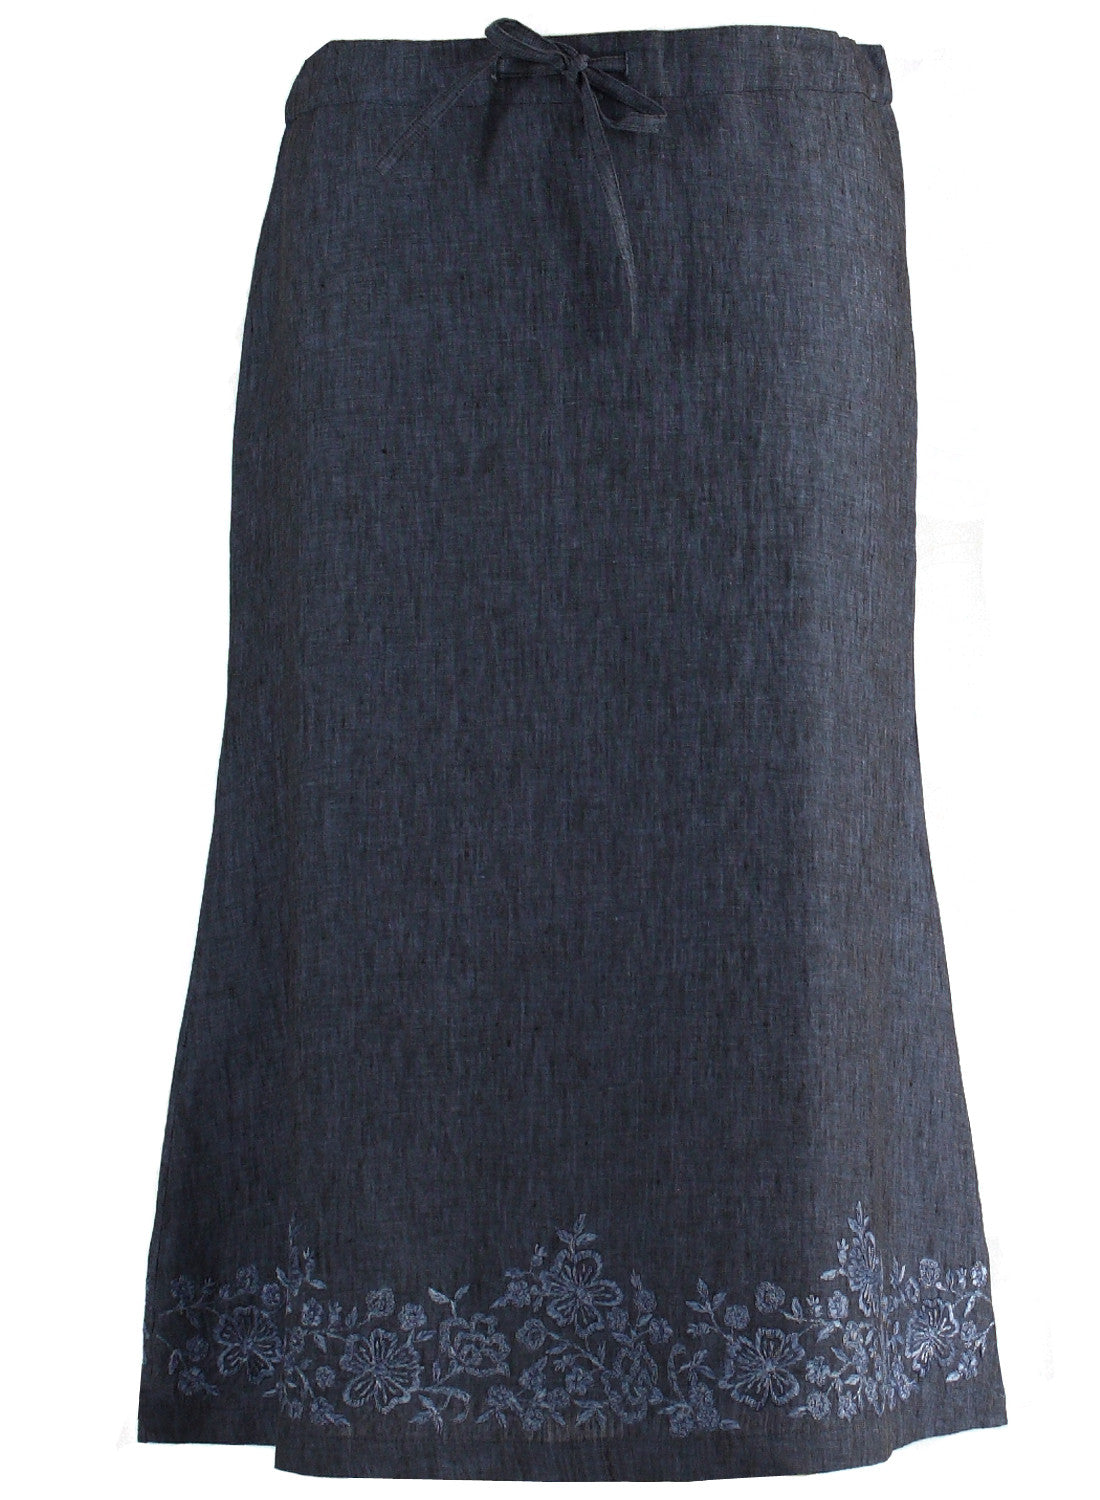 3/4 length Skirt in blue linen with floral Embroidery - MINC ecofashion